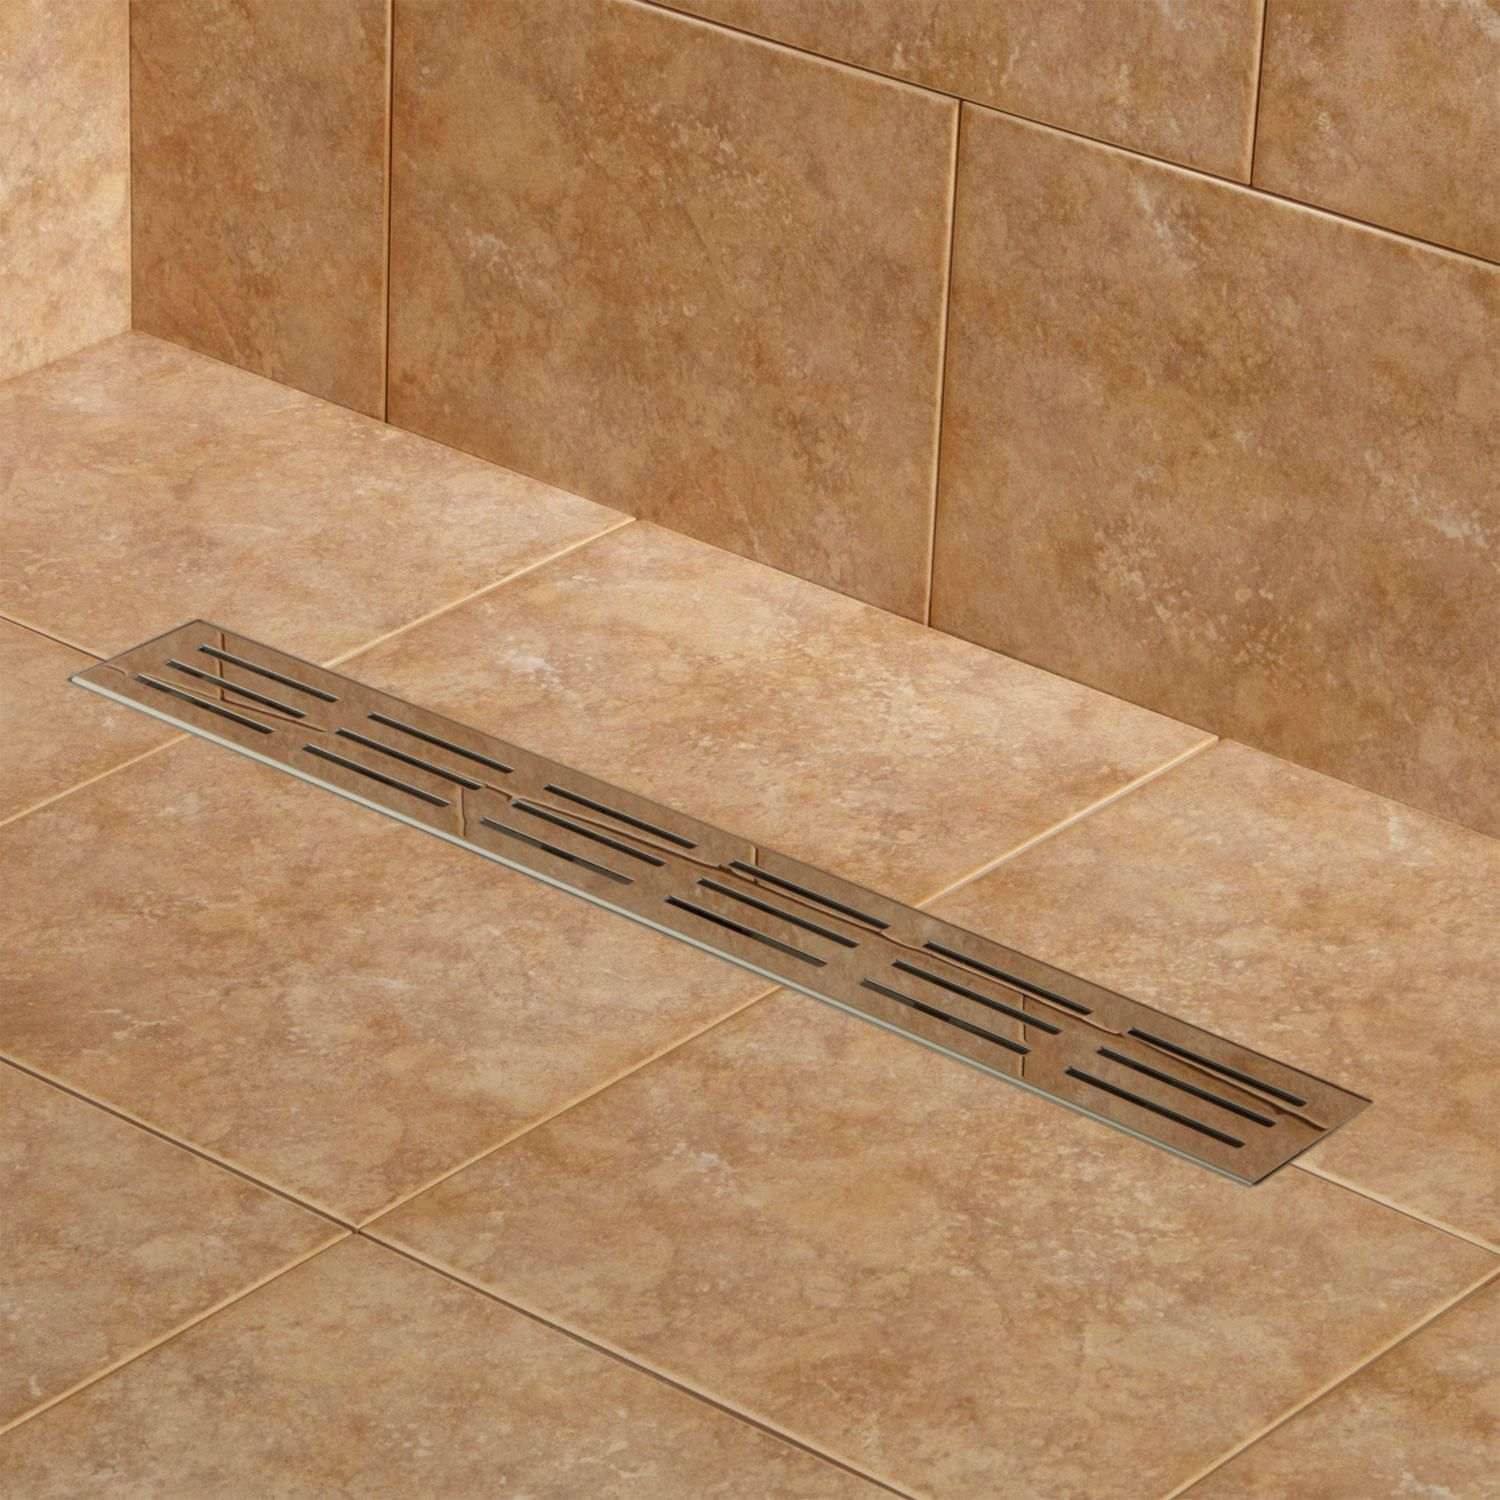 24 Siewart Linear Shower Drain Polished Stainless Steel Shower Drain Shower Panels Linear Drain